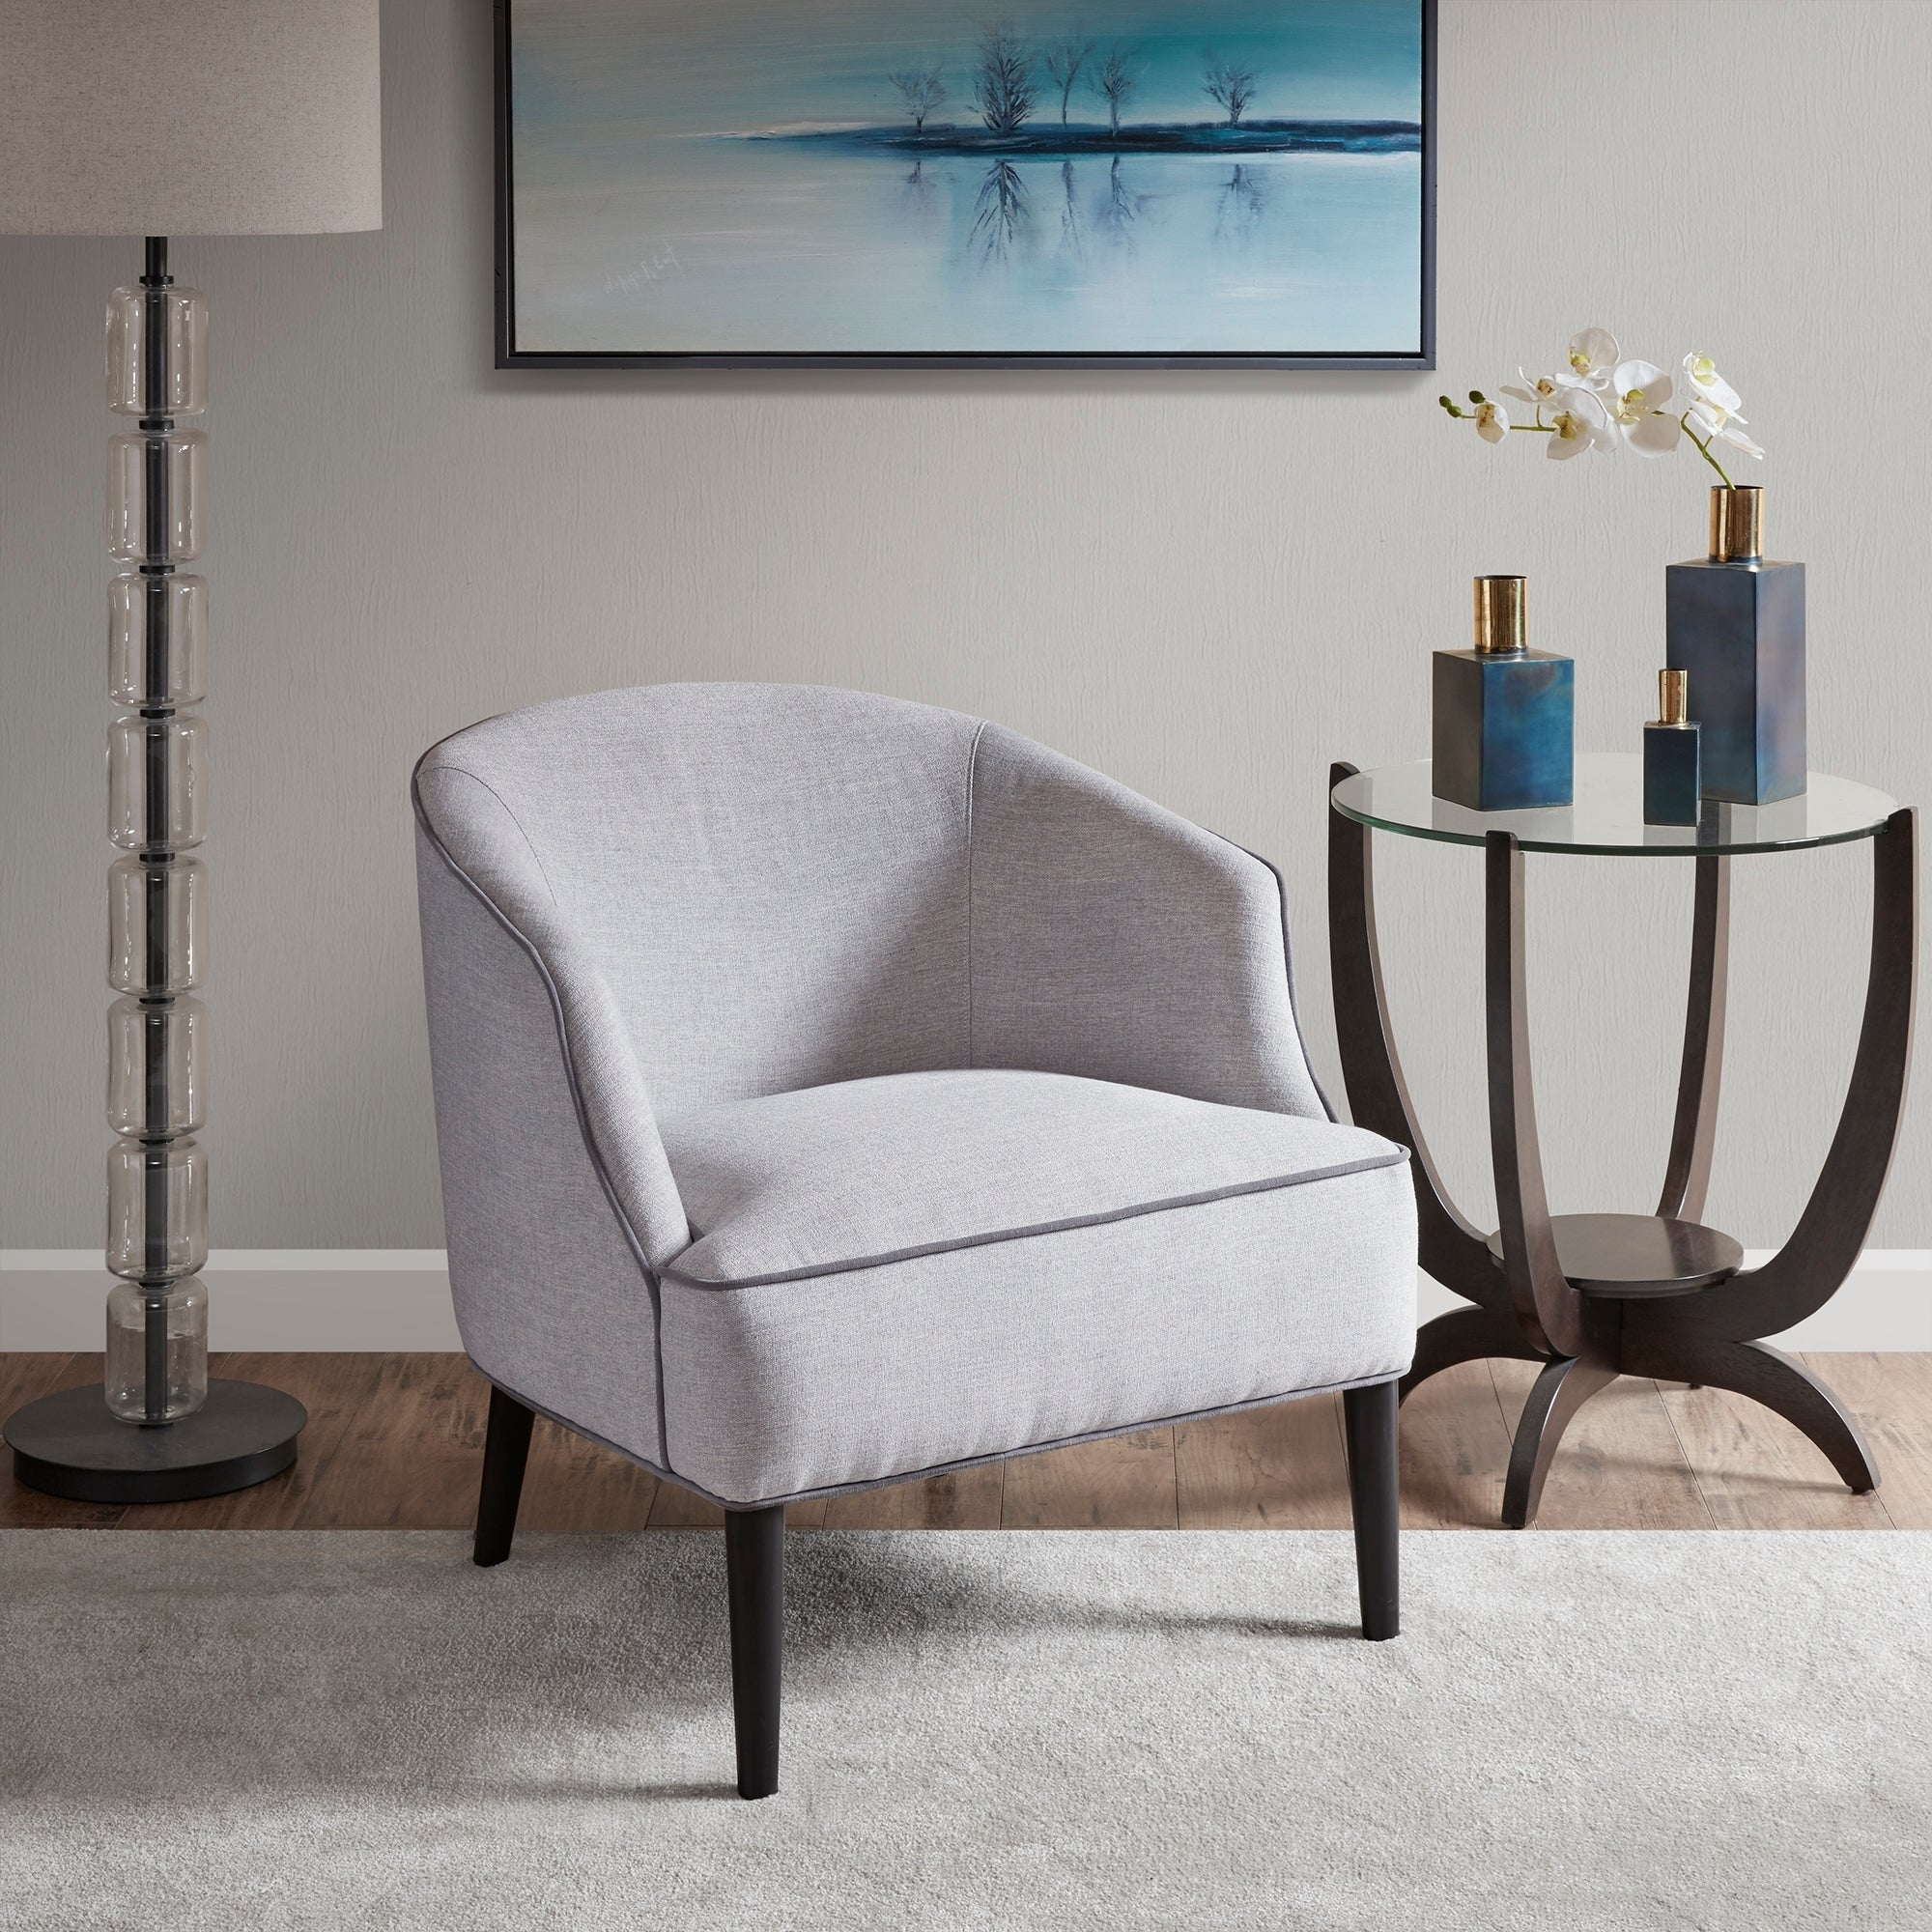 Shop madison park signature rayel silver accent chair 29 75w x 32d x 30 75h free shipping today overstock com 26172826